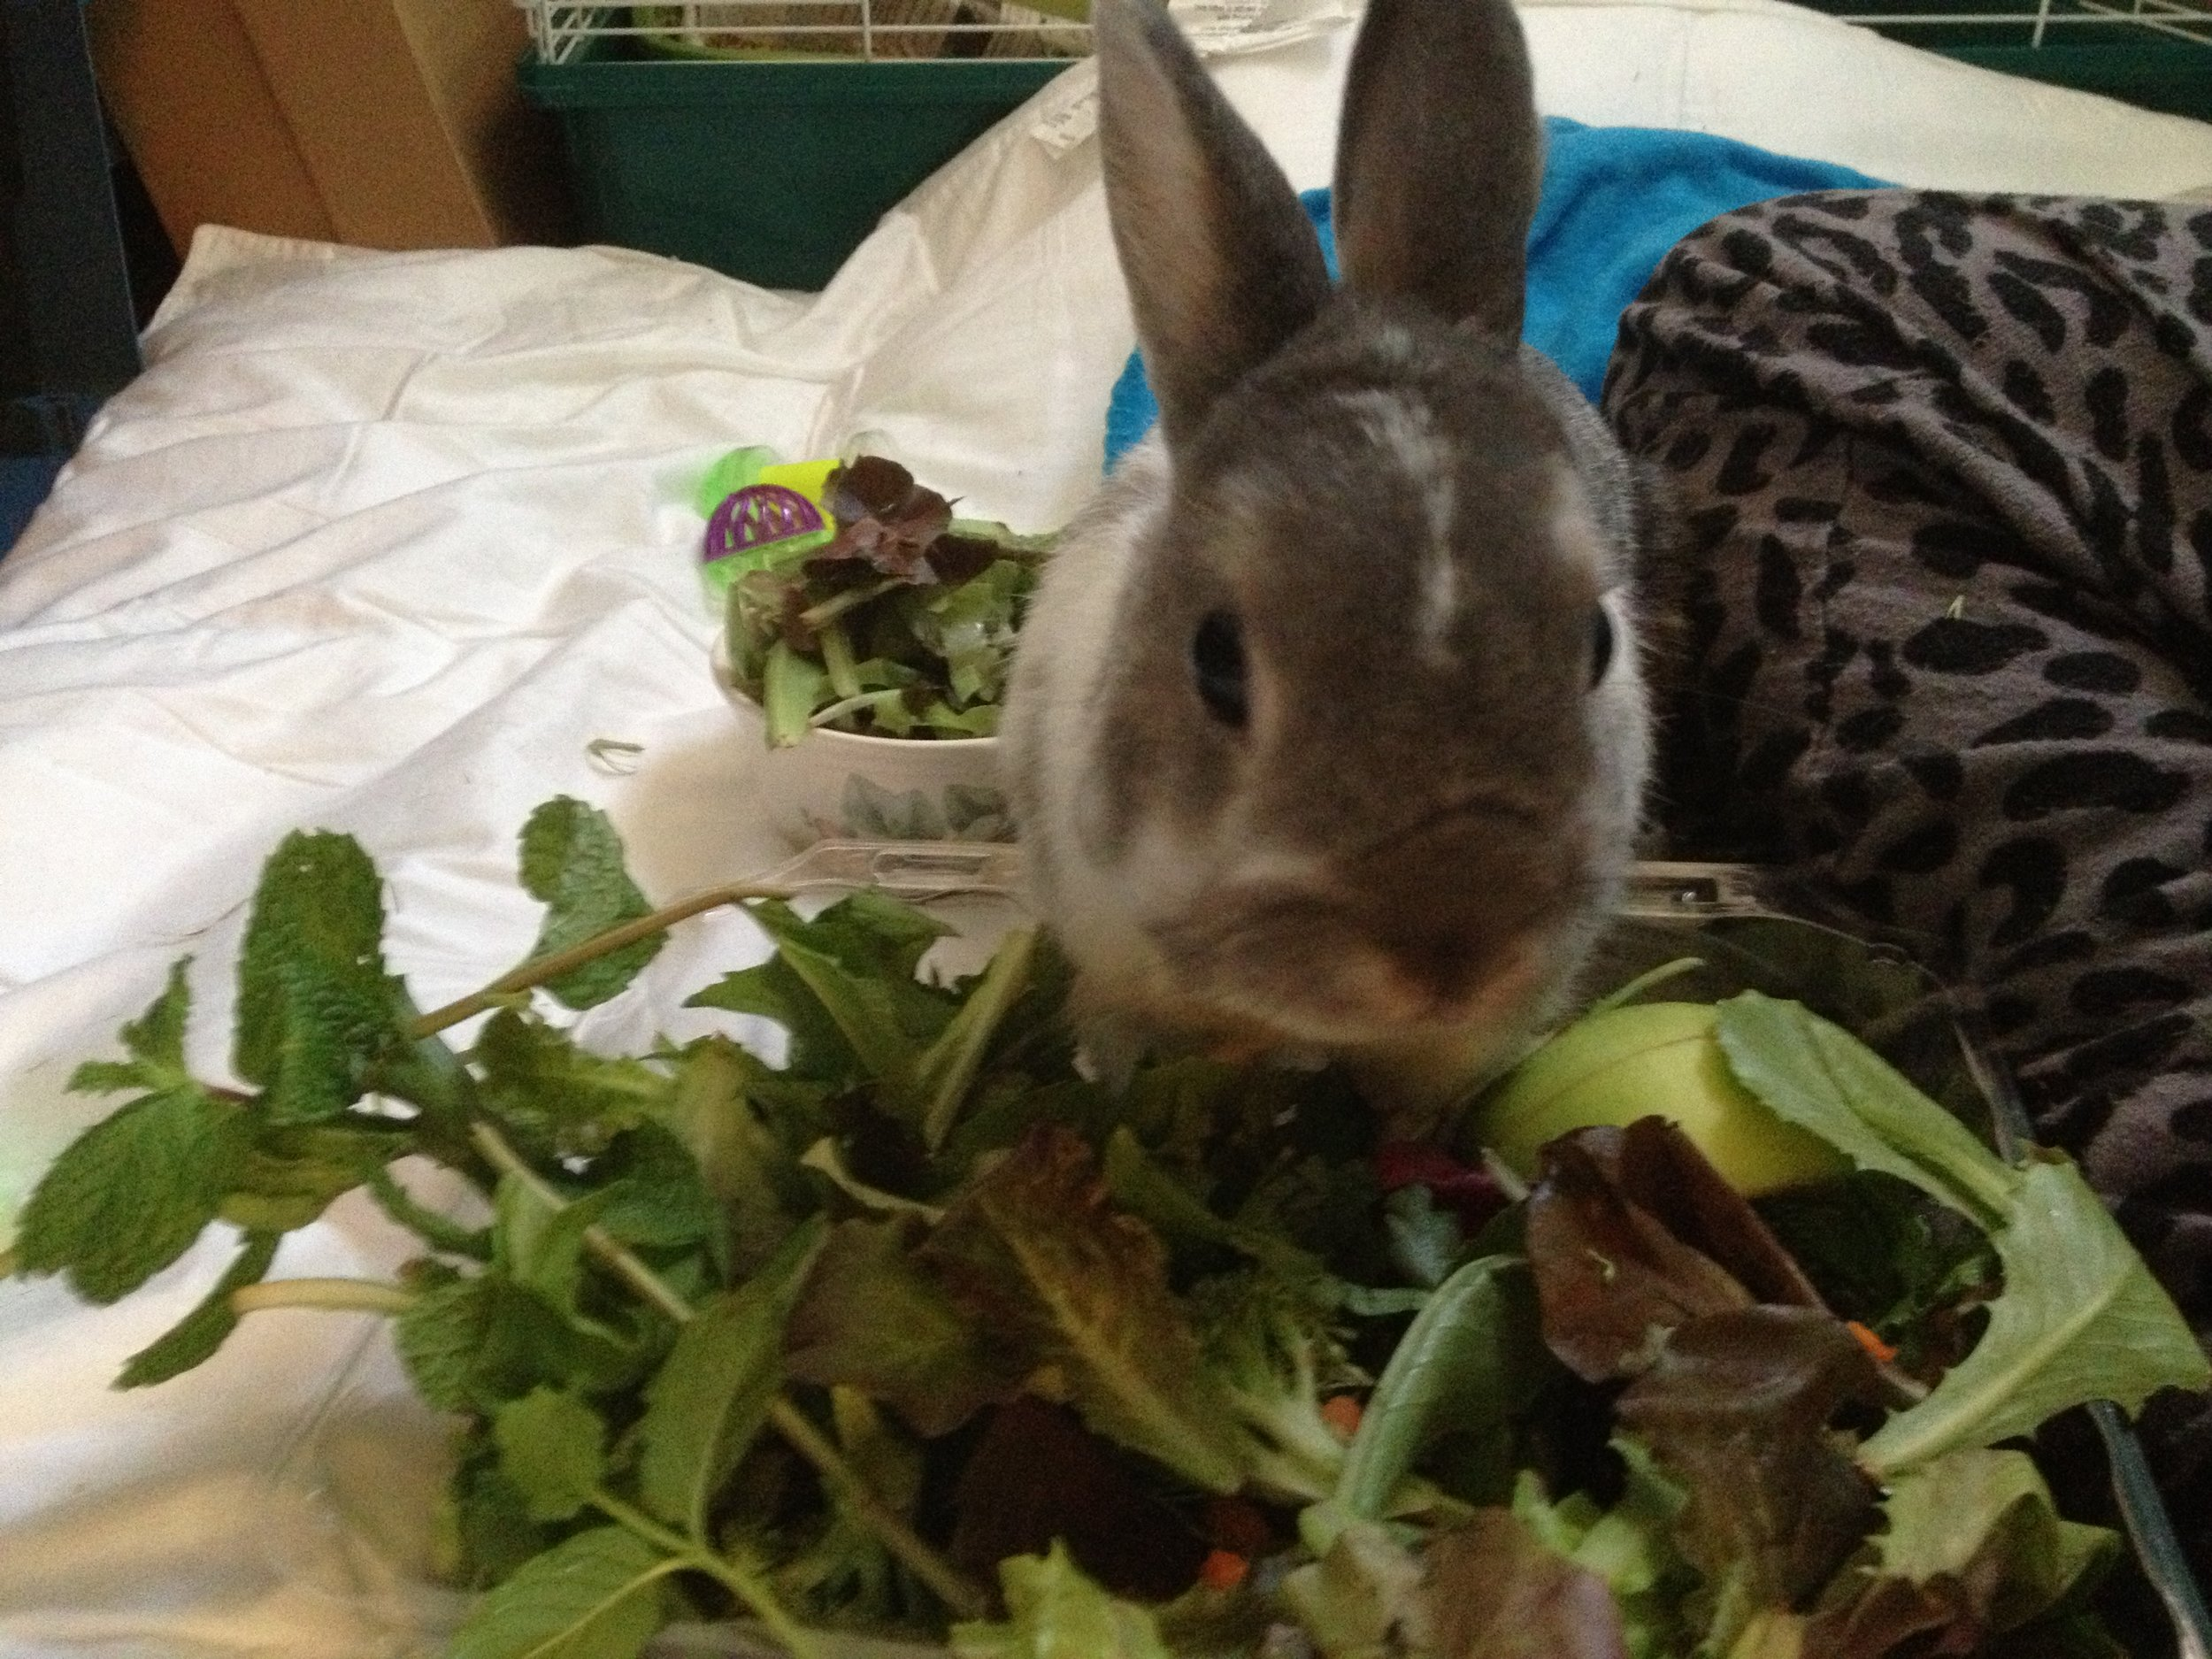 Bunny Bypasses the Bowl of Veggies Prepared for Him and Goes Straight to the Source